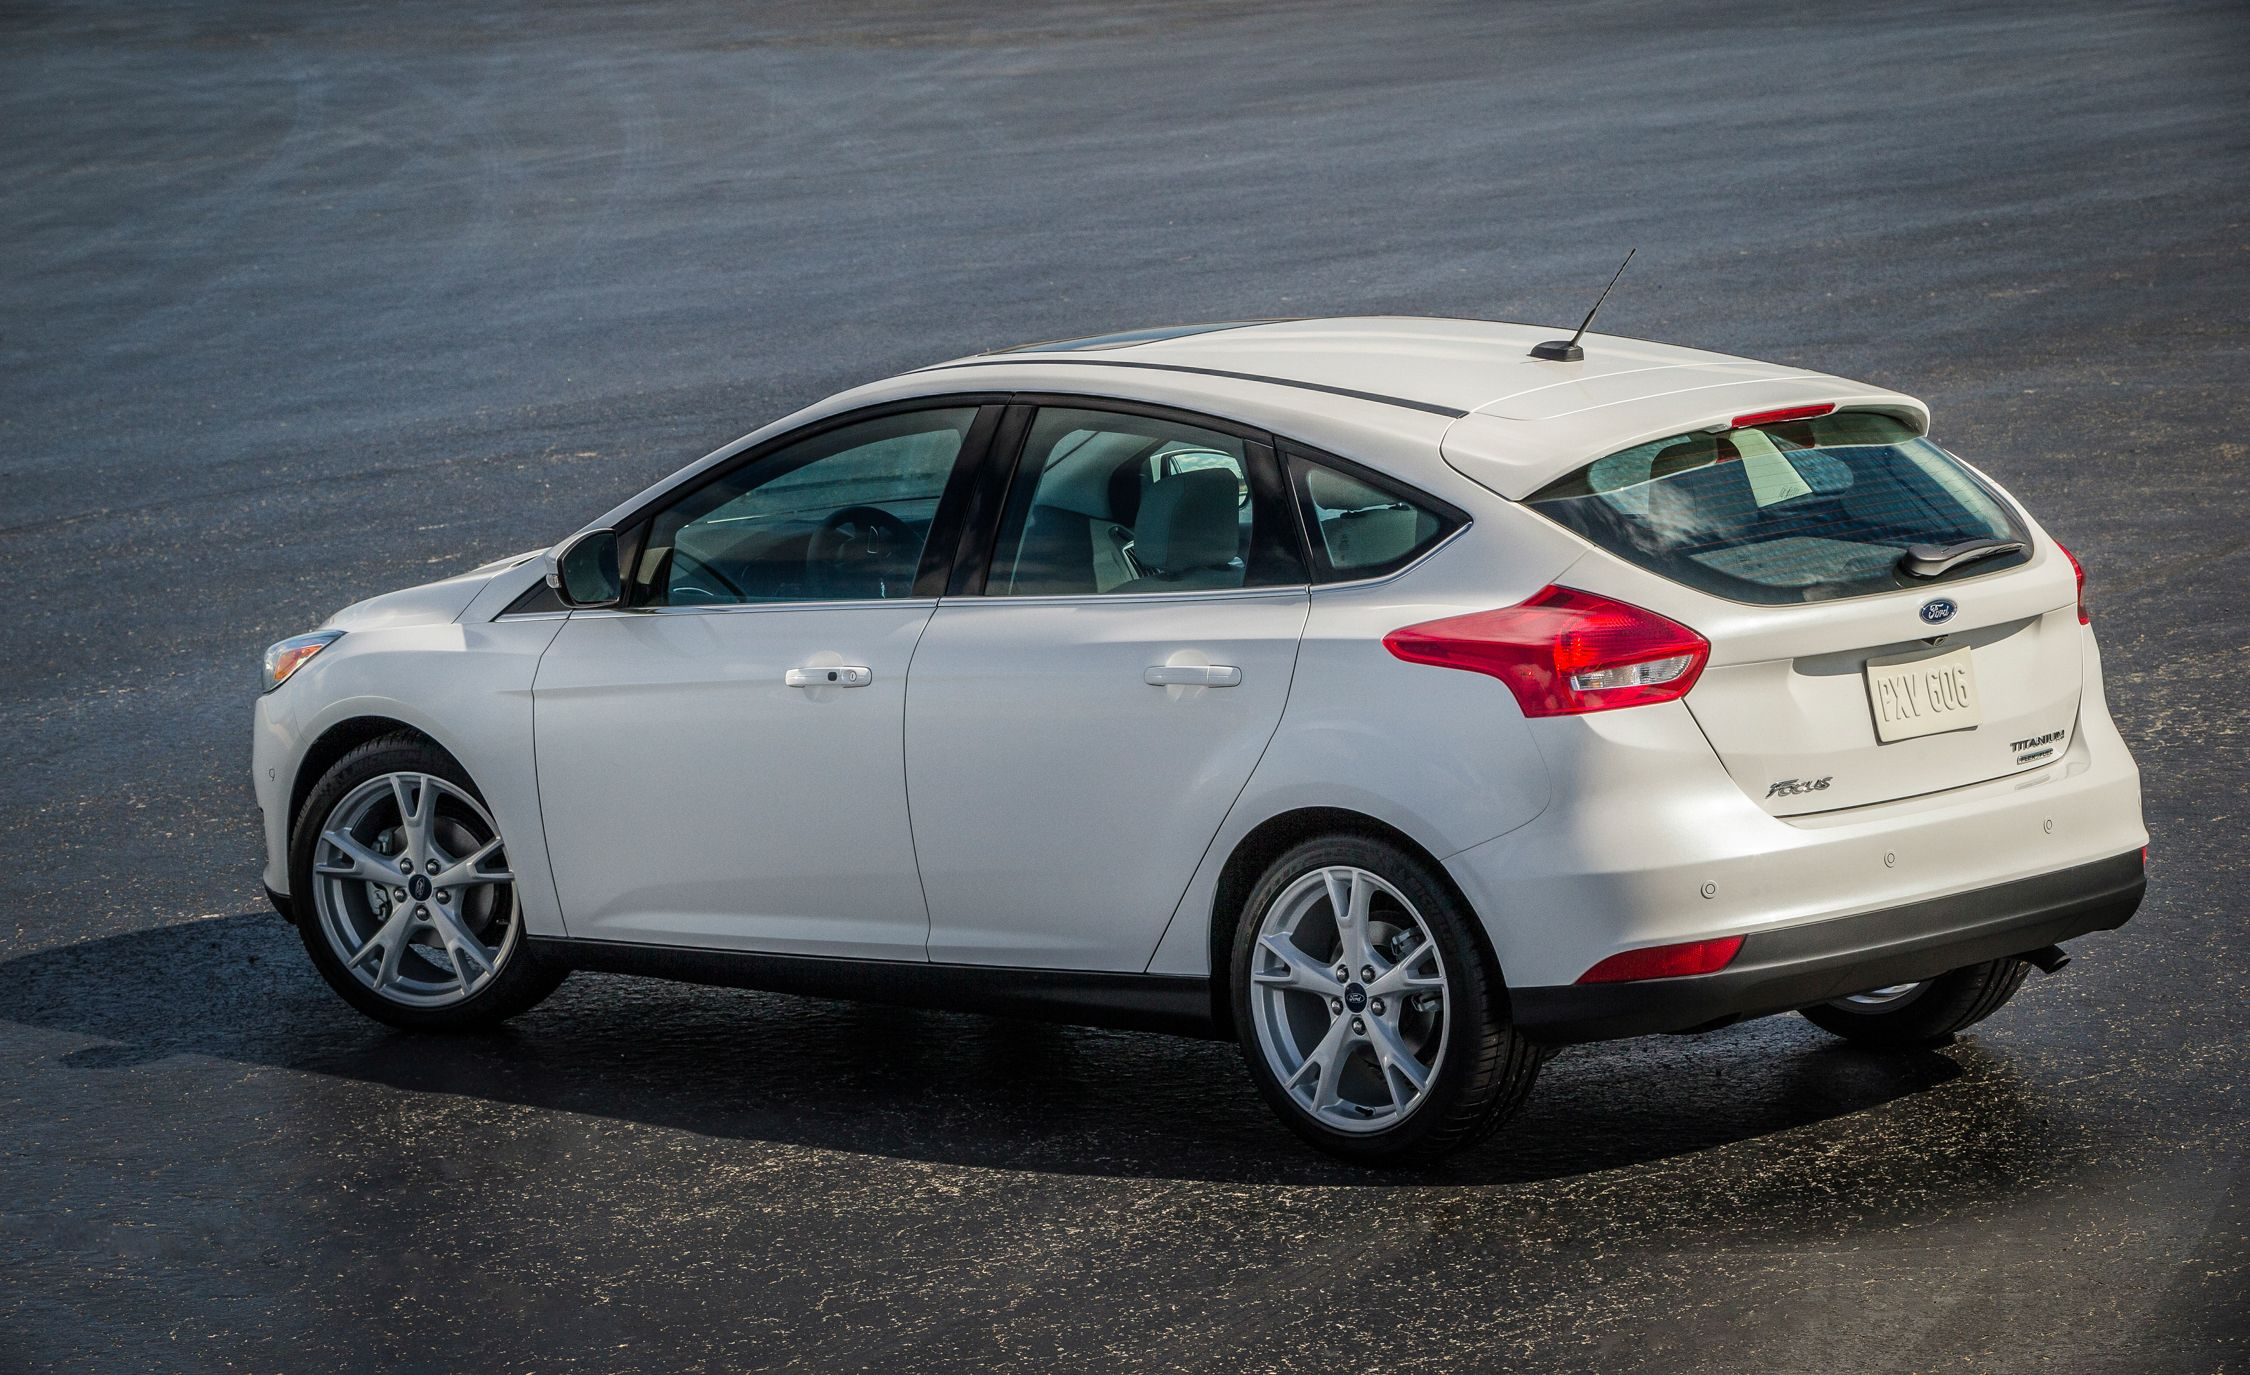 Full Pricing Details For The 2015 Ford Focus News Car And Driver